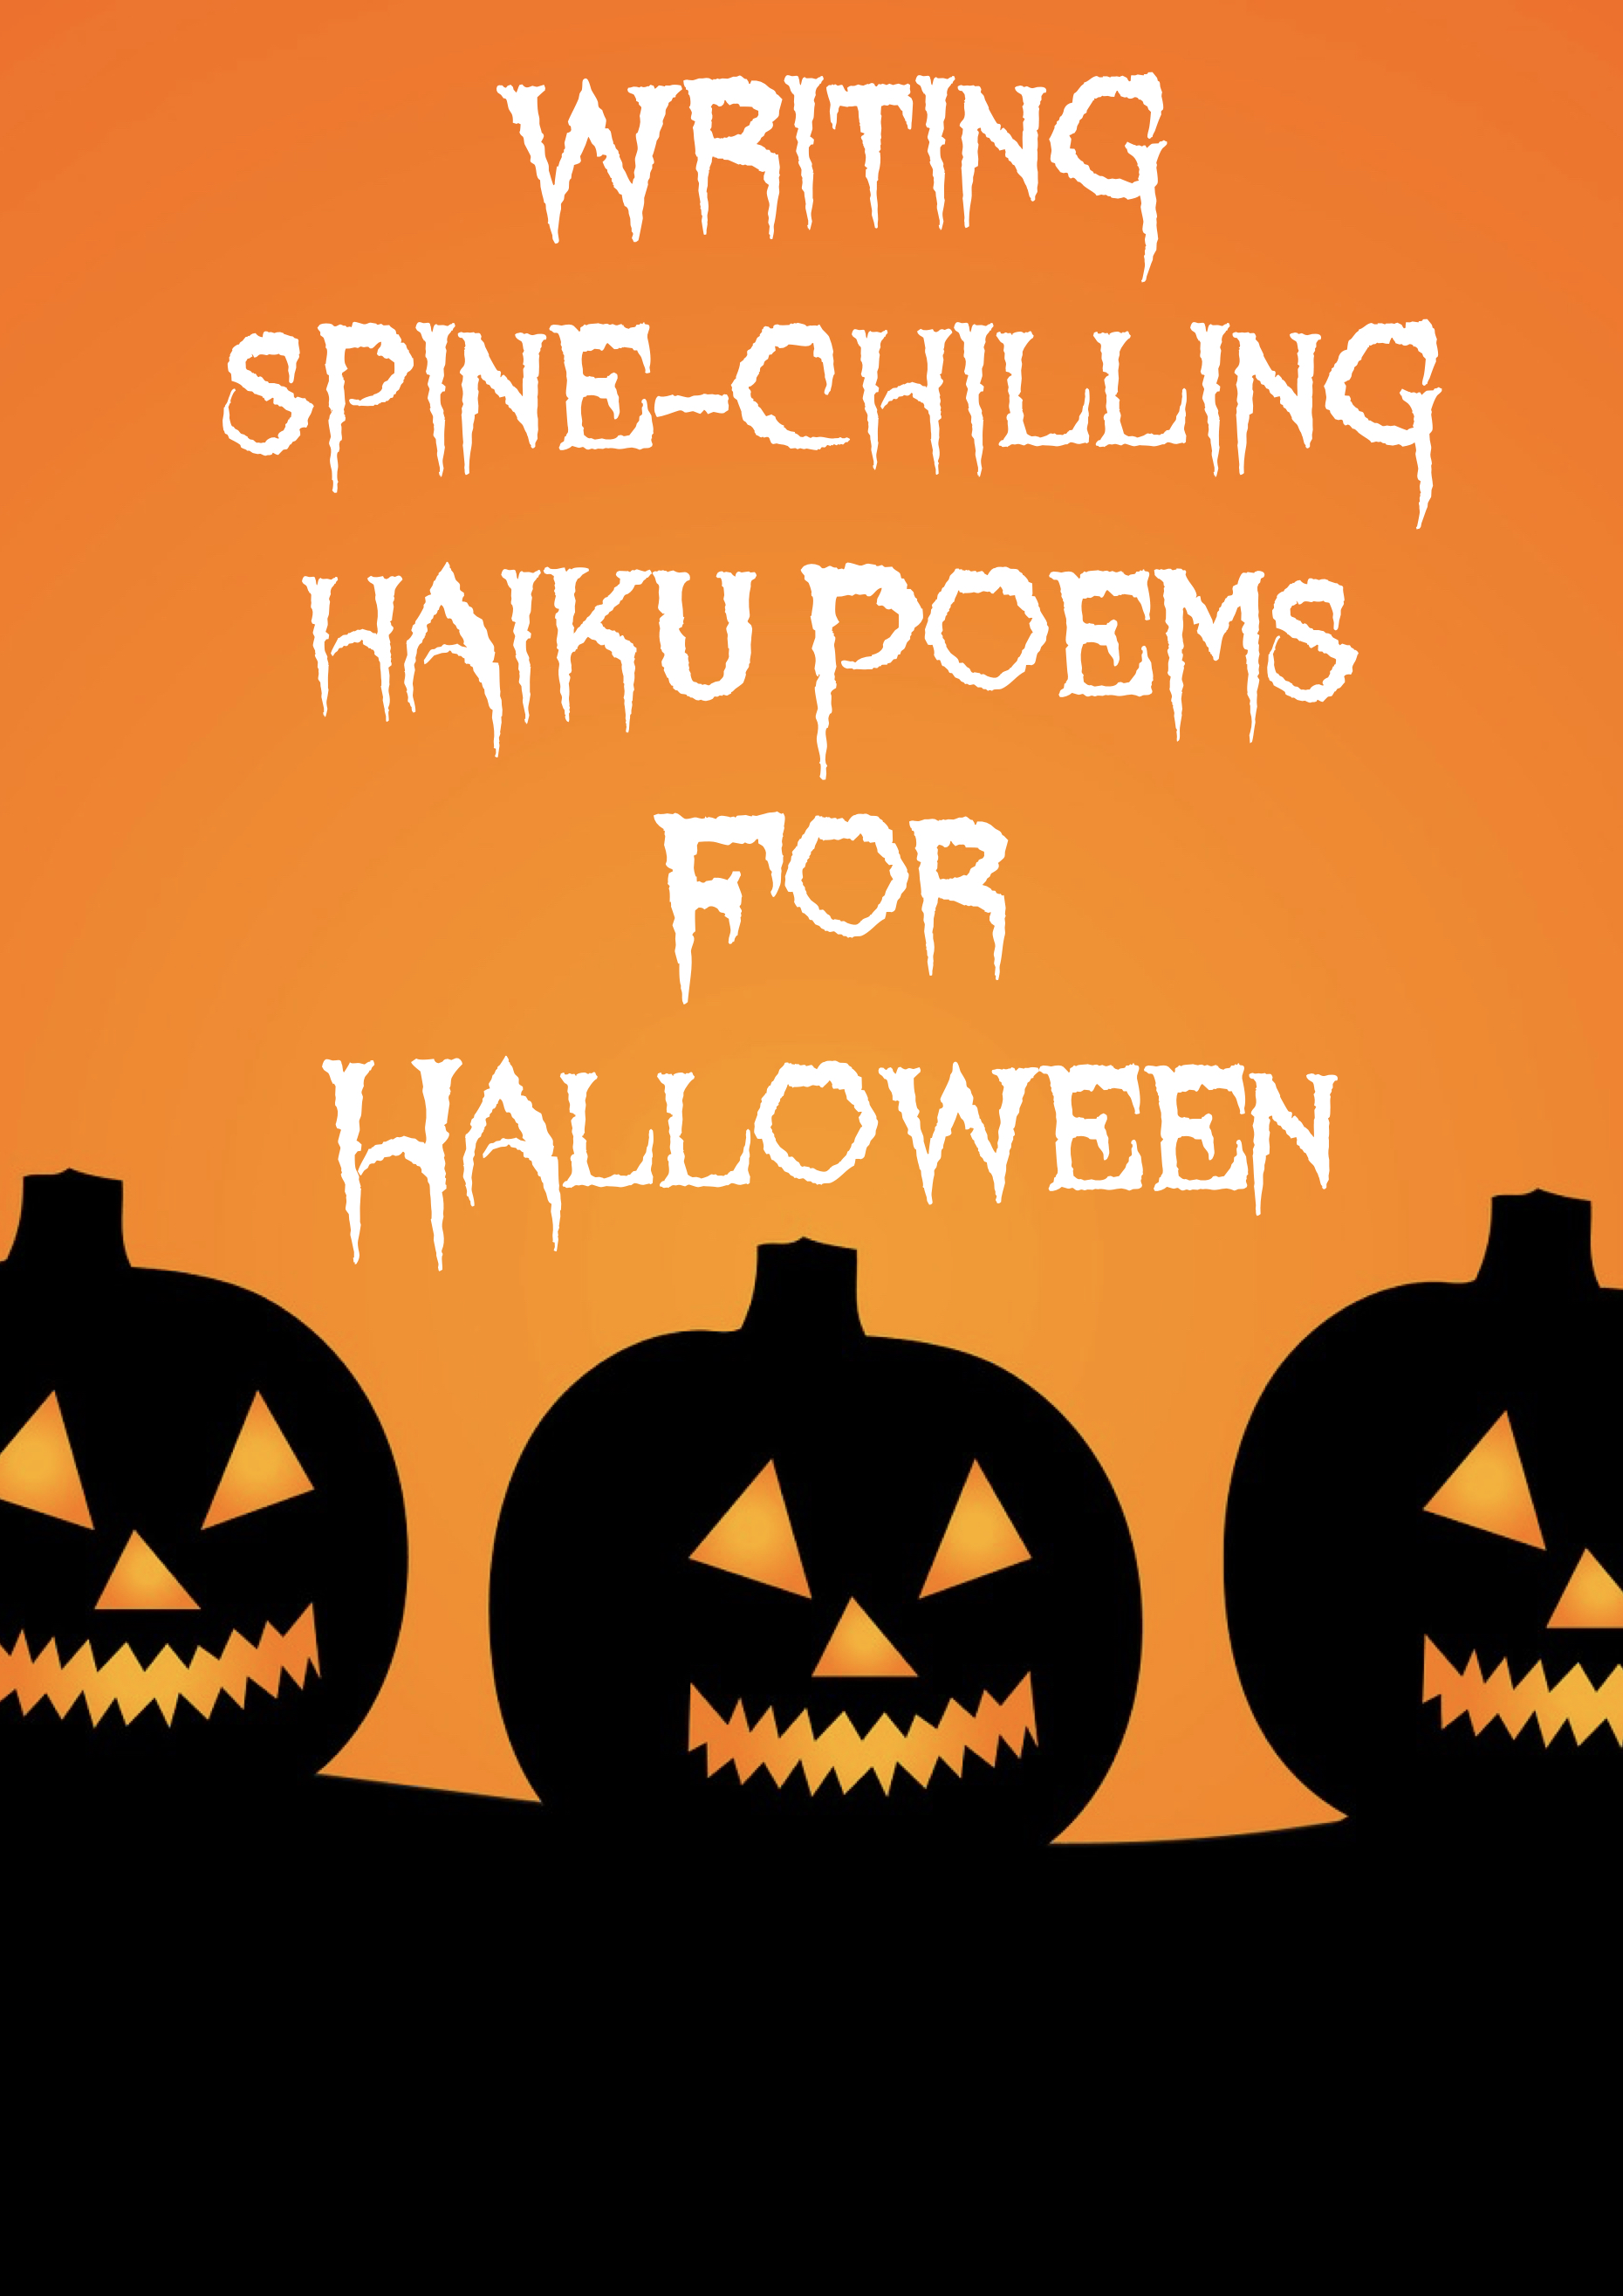 Haiku Poems for Halloween